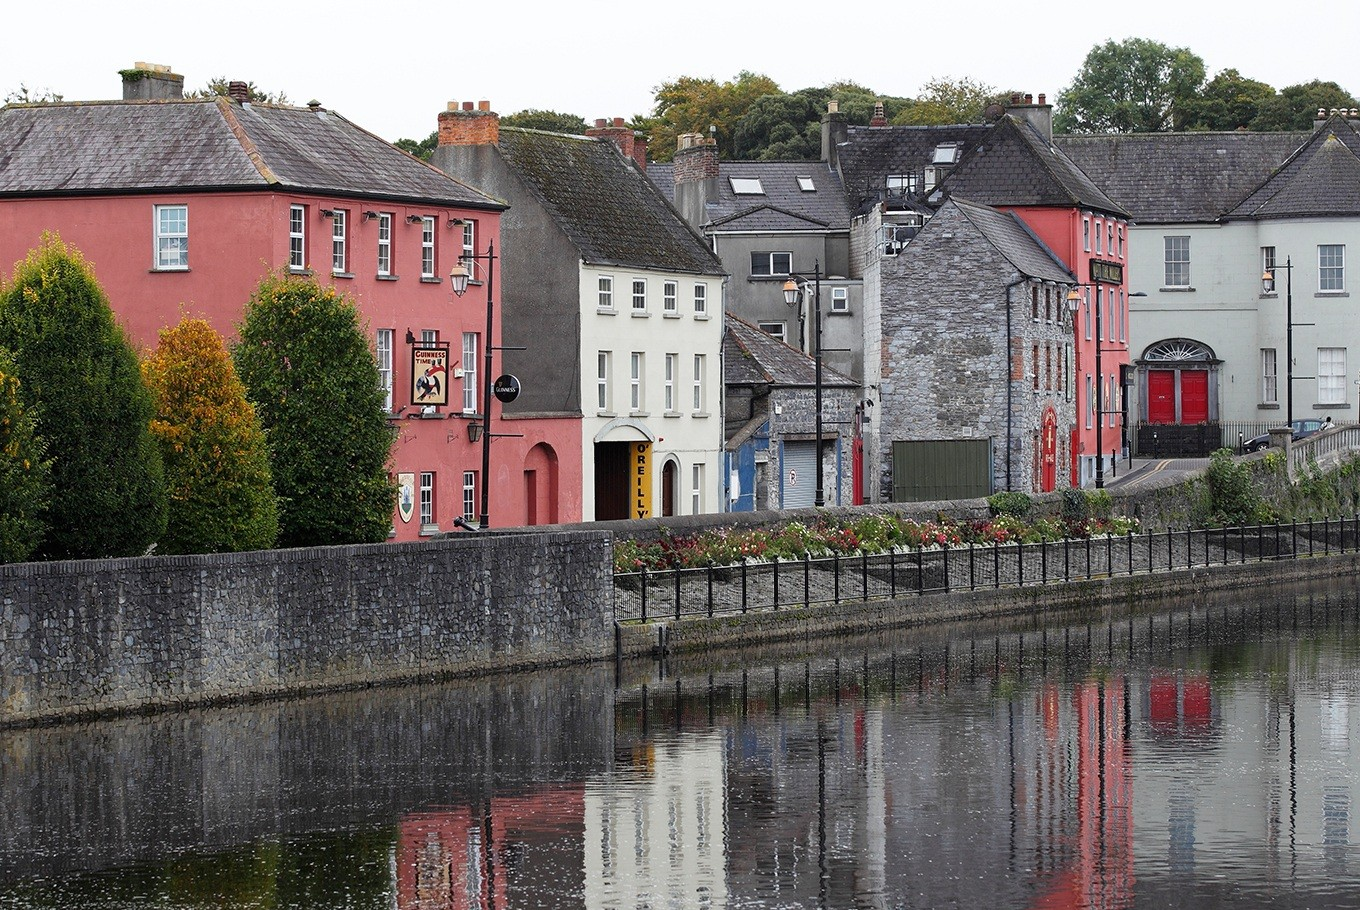 On the banks of the Nore River, notebook and pen in hand, I stood in the shadow of a 13th century castle in the city of Kilkenny.